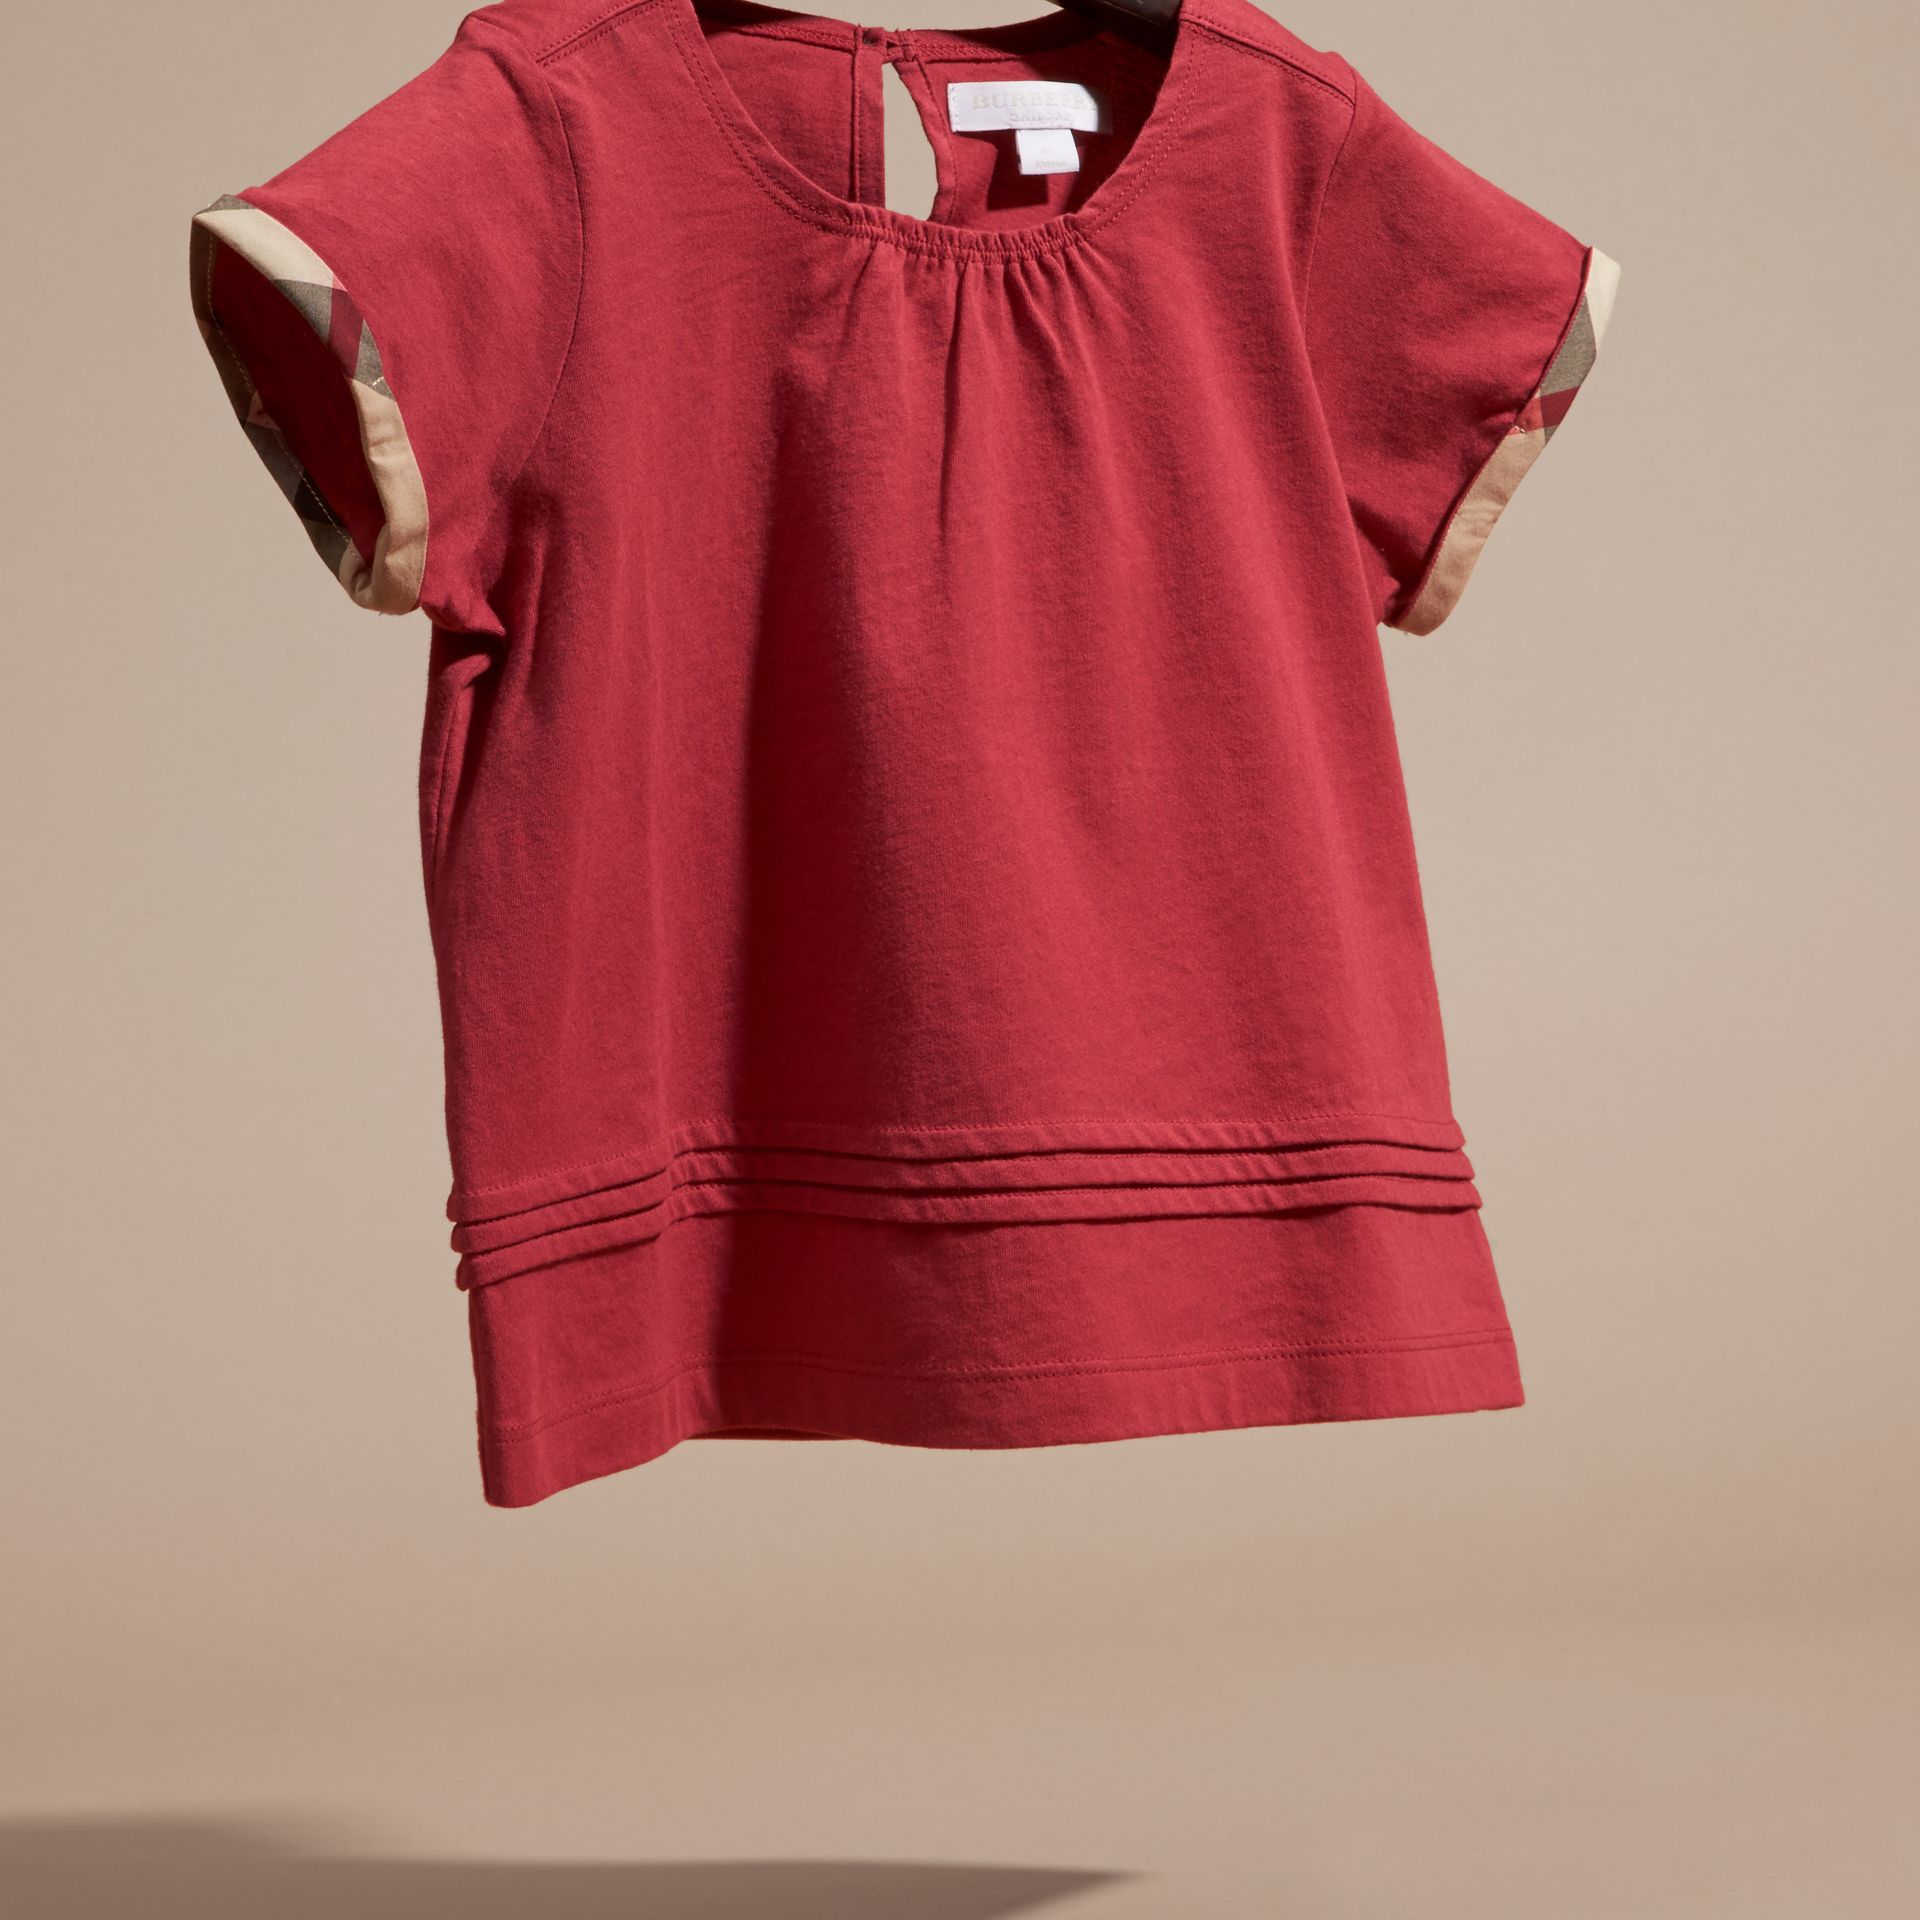 Dark plum pink Pleat Detail Check Cotton T-Shirt Dark Plum Pink - gallery image 3